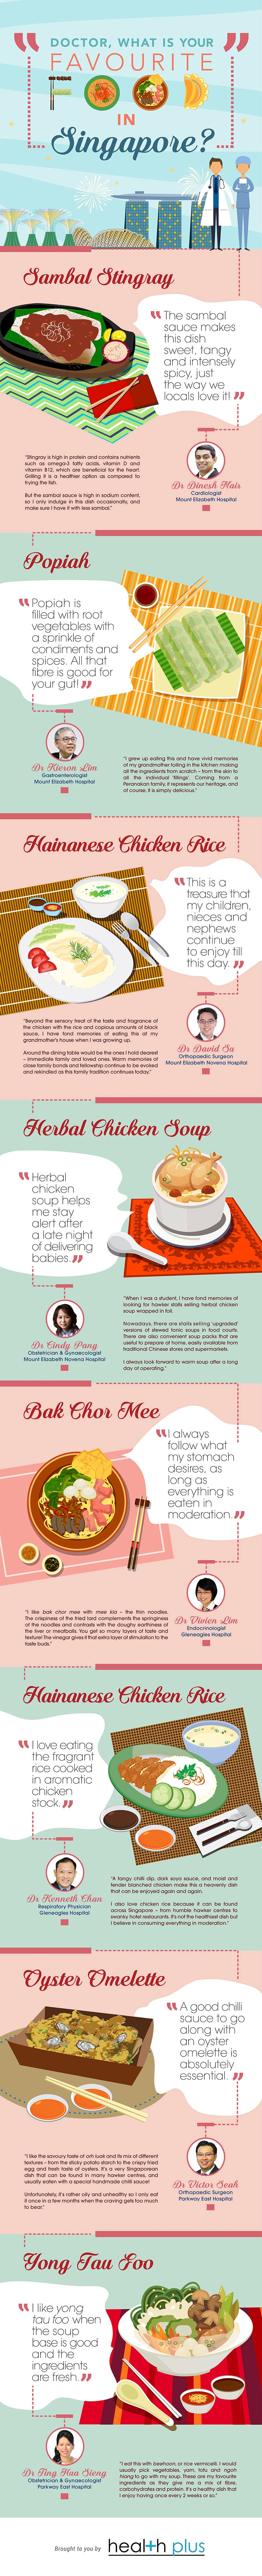 Doctors' favourite food in Singapore